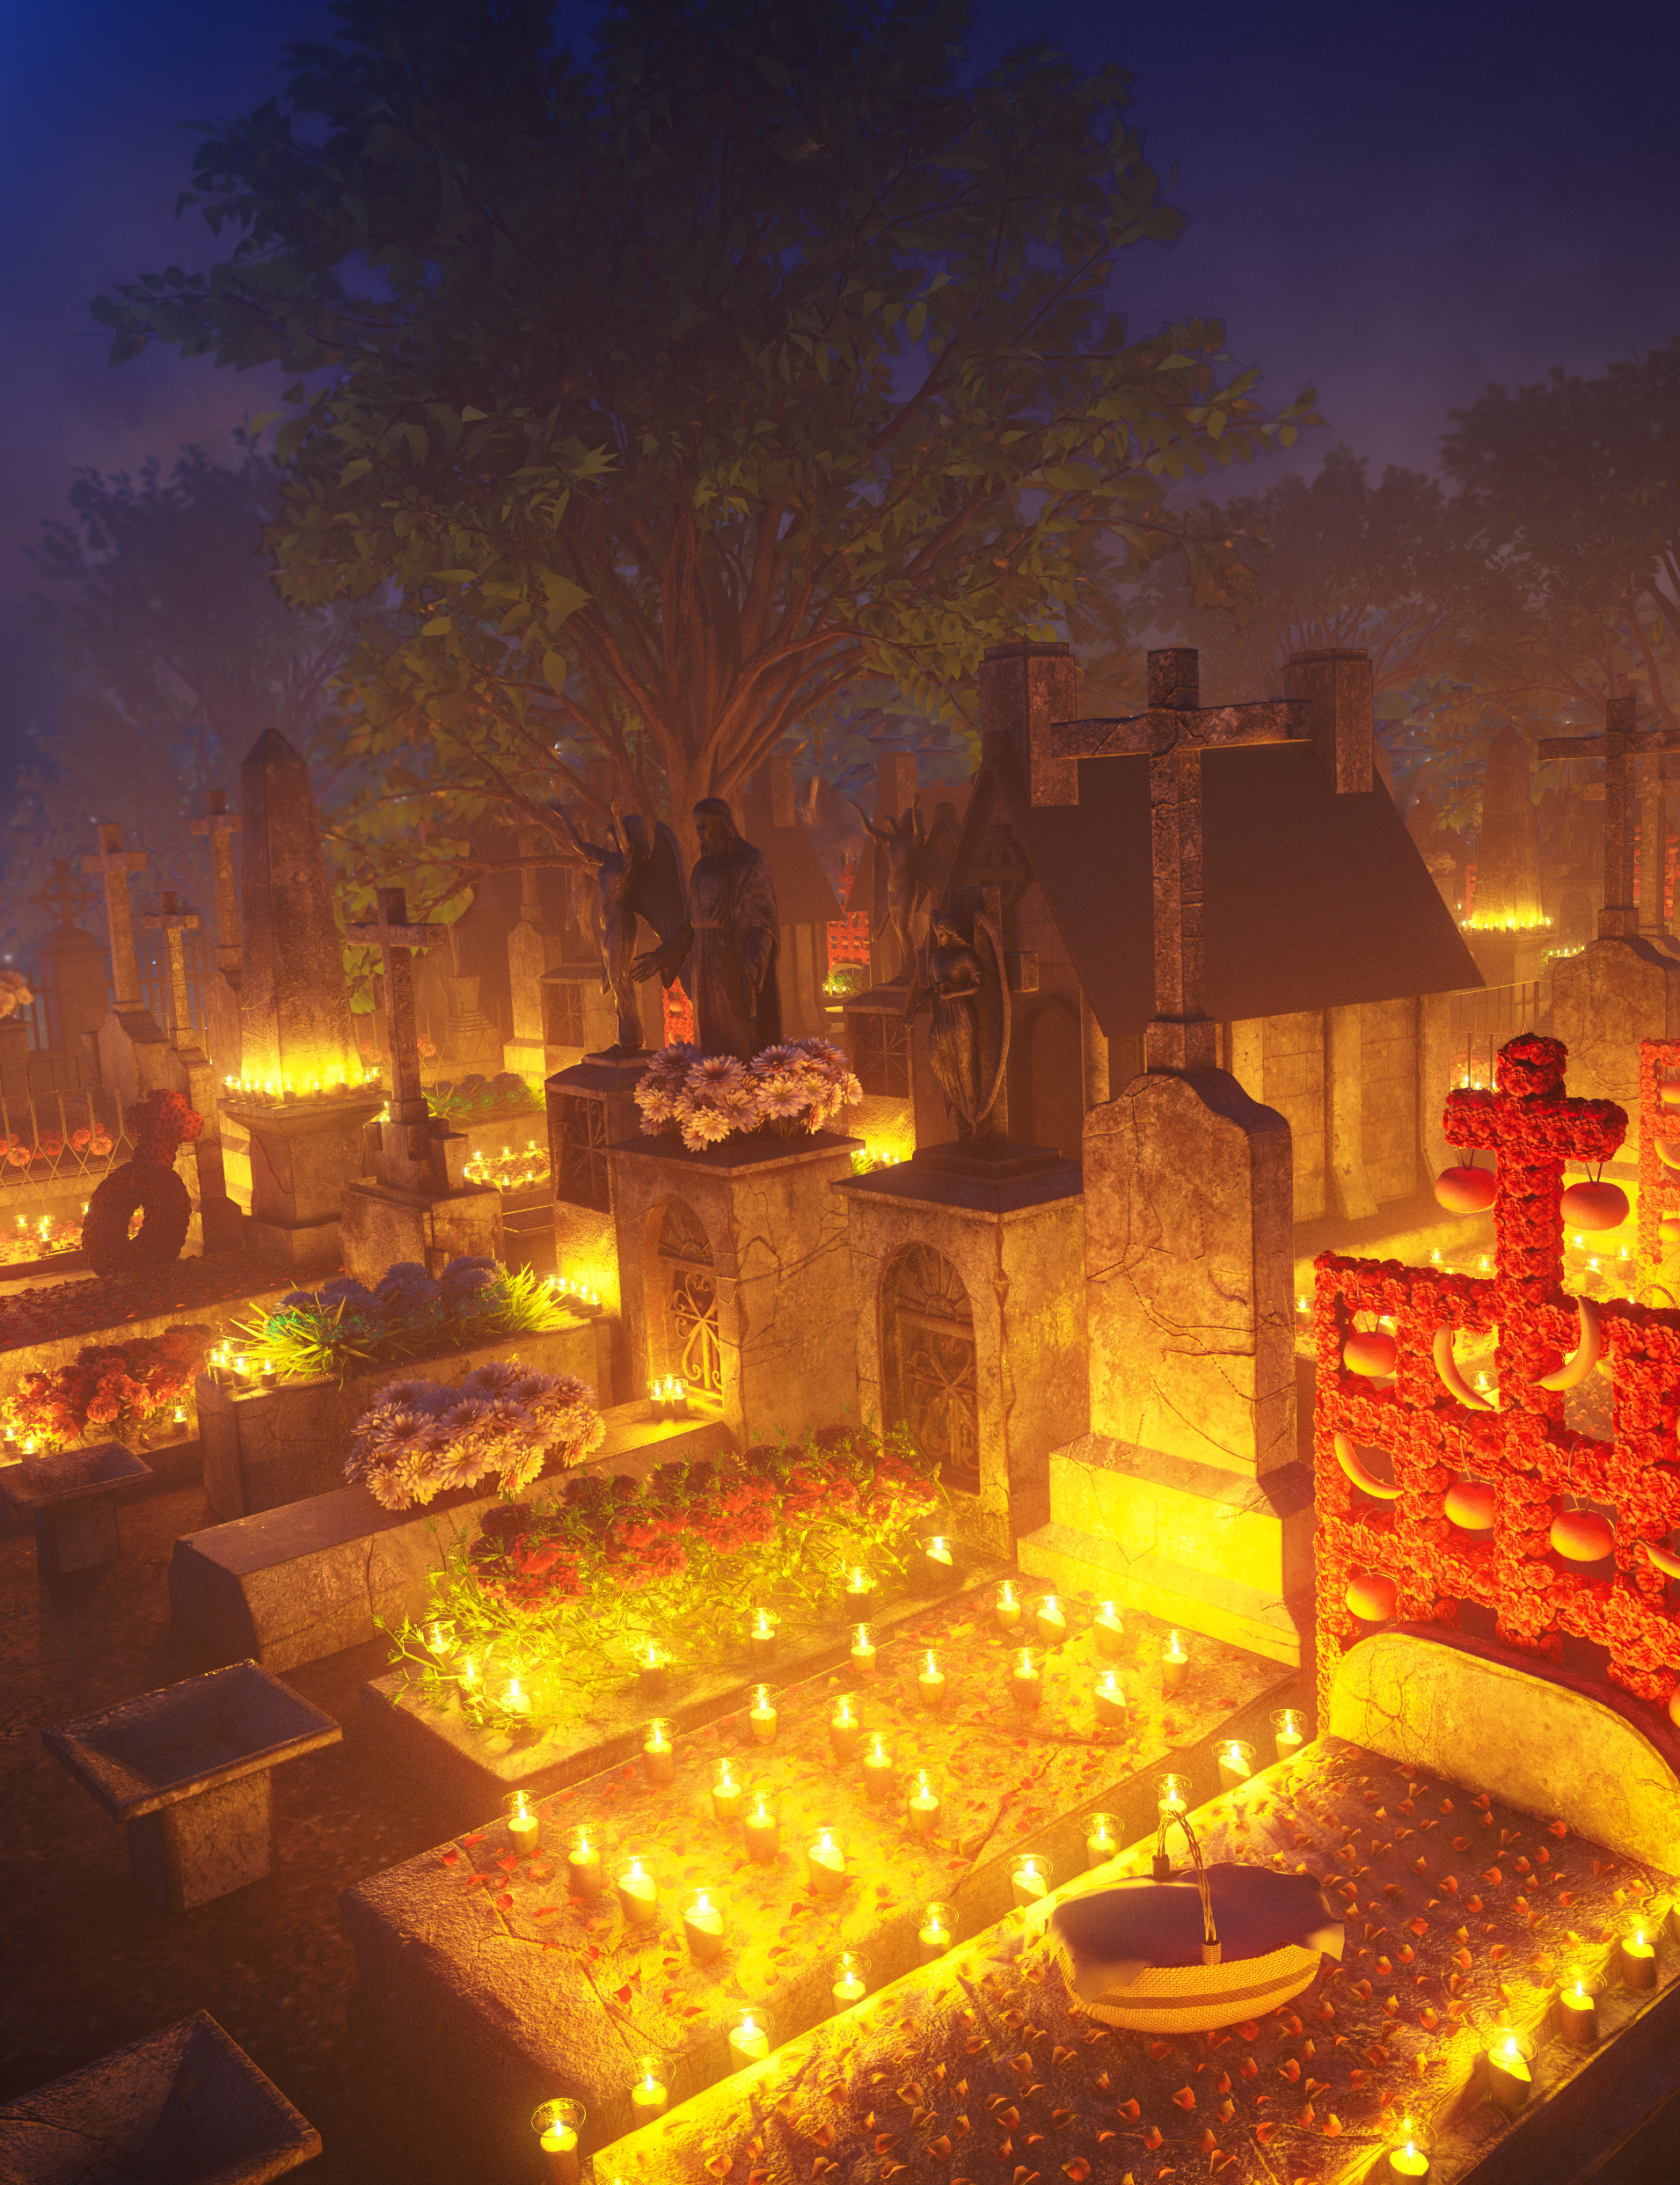 Day of the Dead Cemetery by: Charlie, 3D Models by Daz 3D